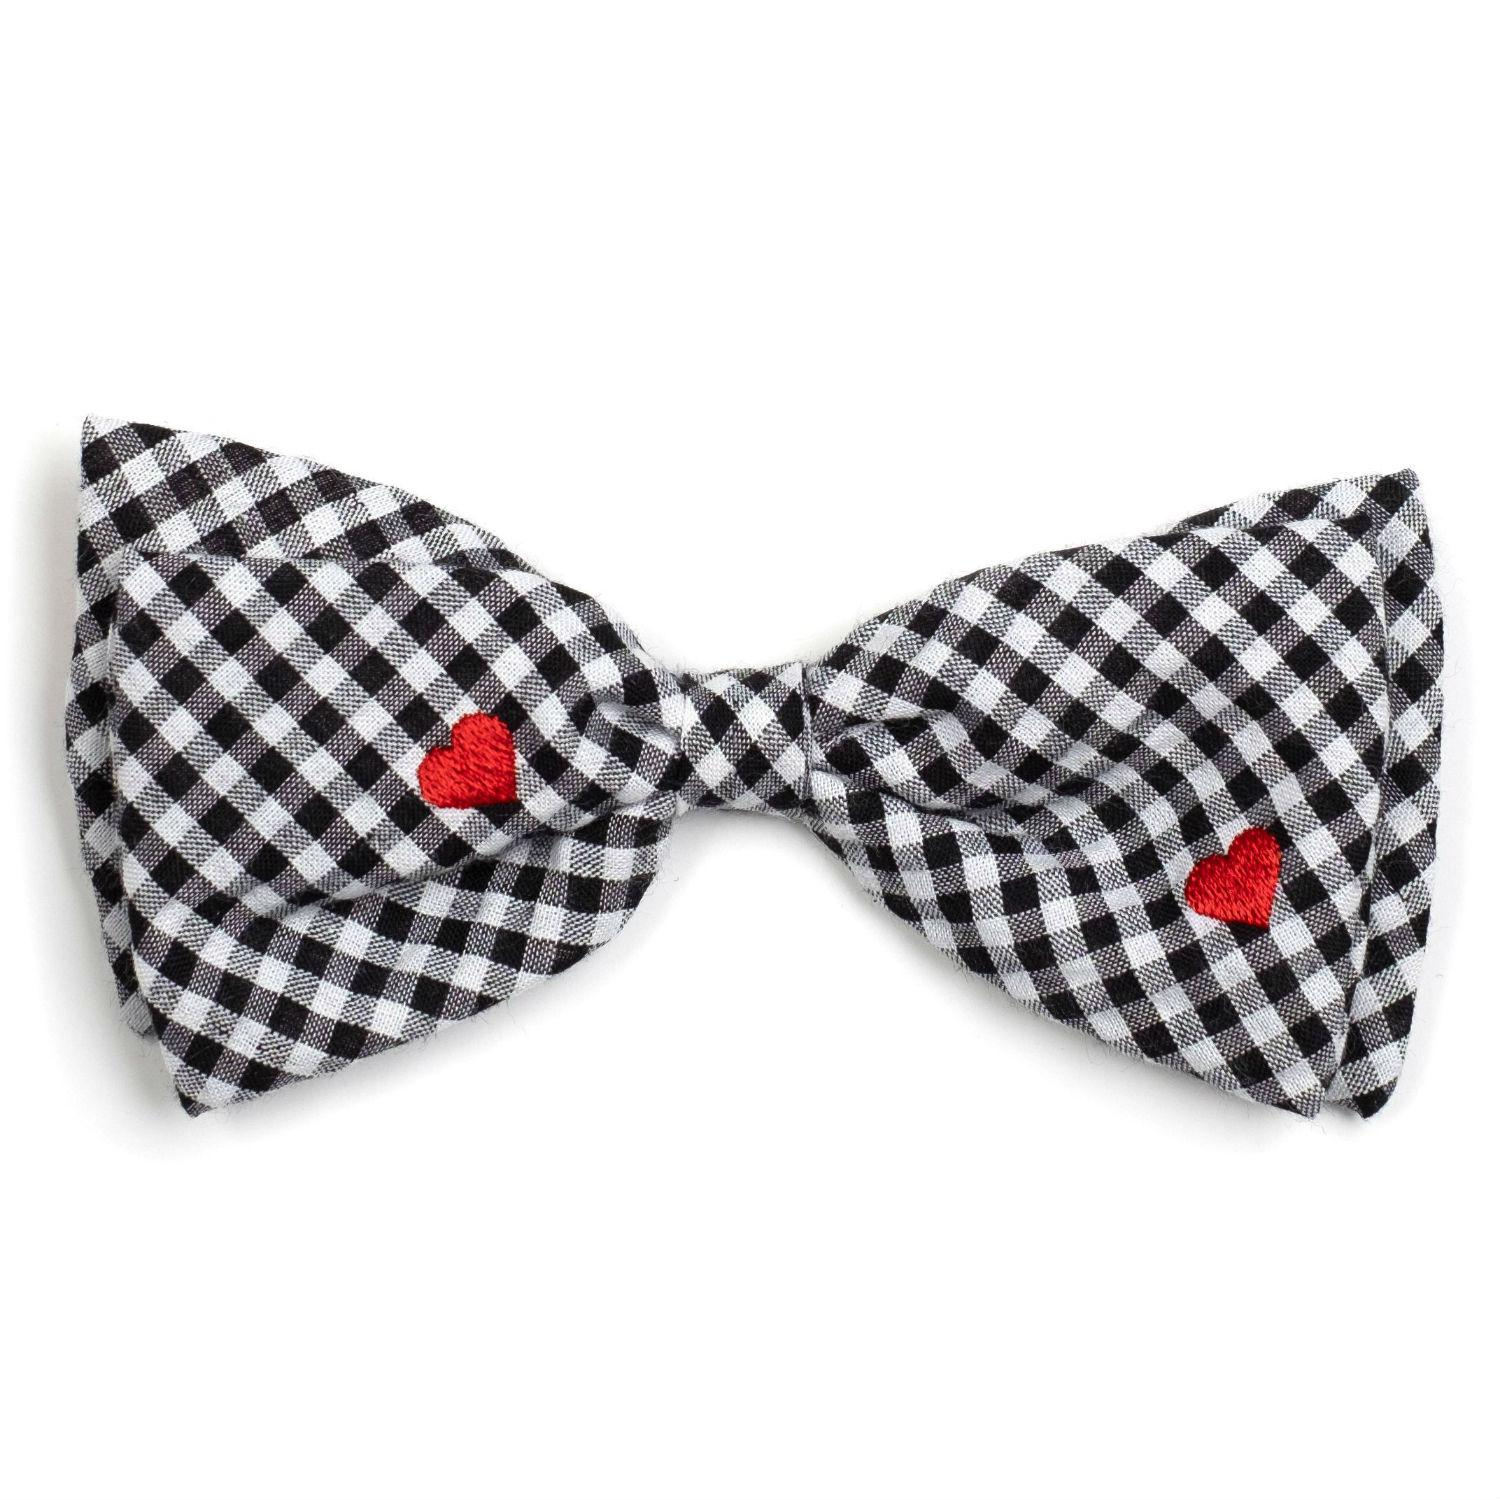 Worthy Dog Gingham Hearts Dog and Cat Bow Tie Collar Attachment